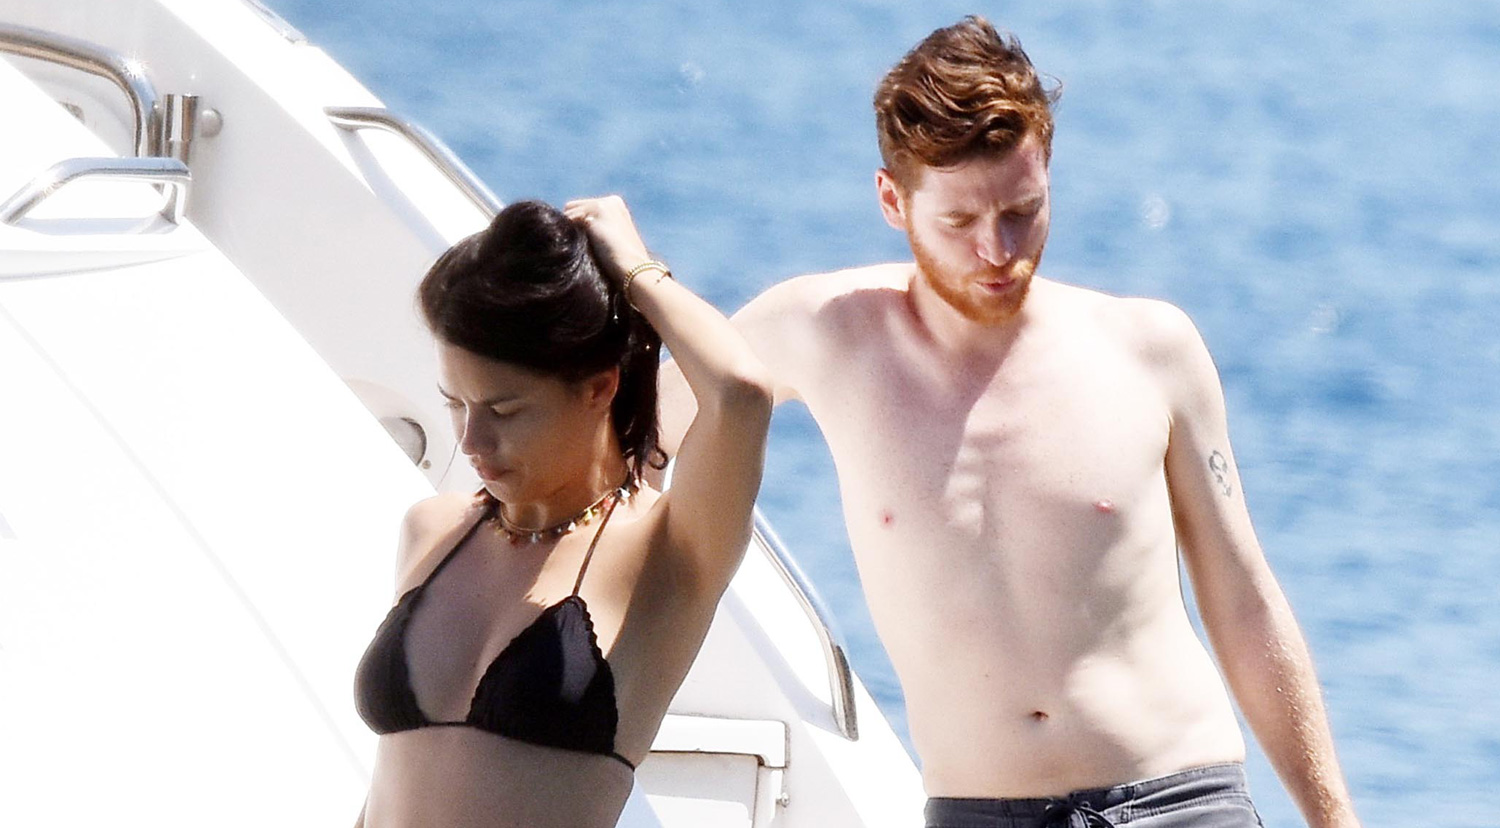 timberlake dating Dating / relationship history for justin timberlake view shagtree to see all hookups including alleged stds (herpes.